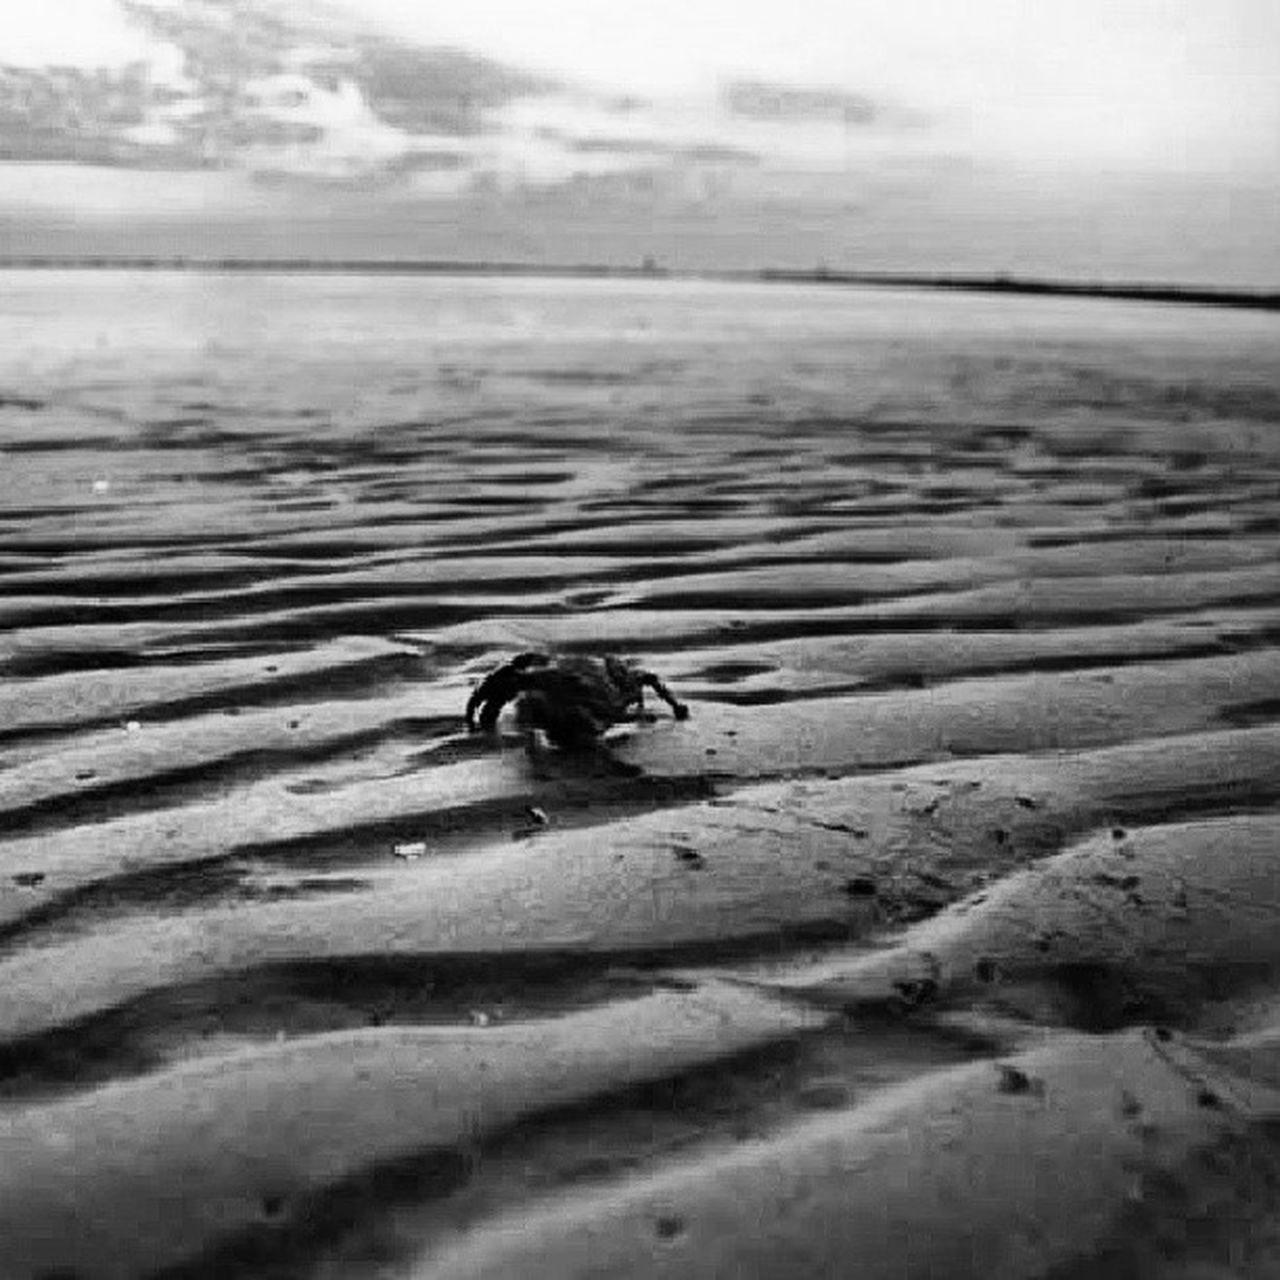 beach, sea, sand, animal themes, one animal, animals in the wild, water, nature, outdoors, no people, day, sky, animal wildlife, sea life, horizon over water, close-up